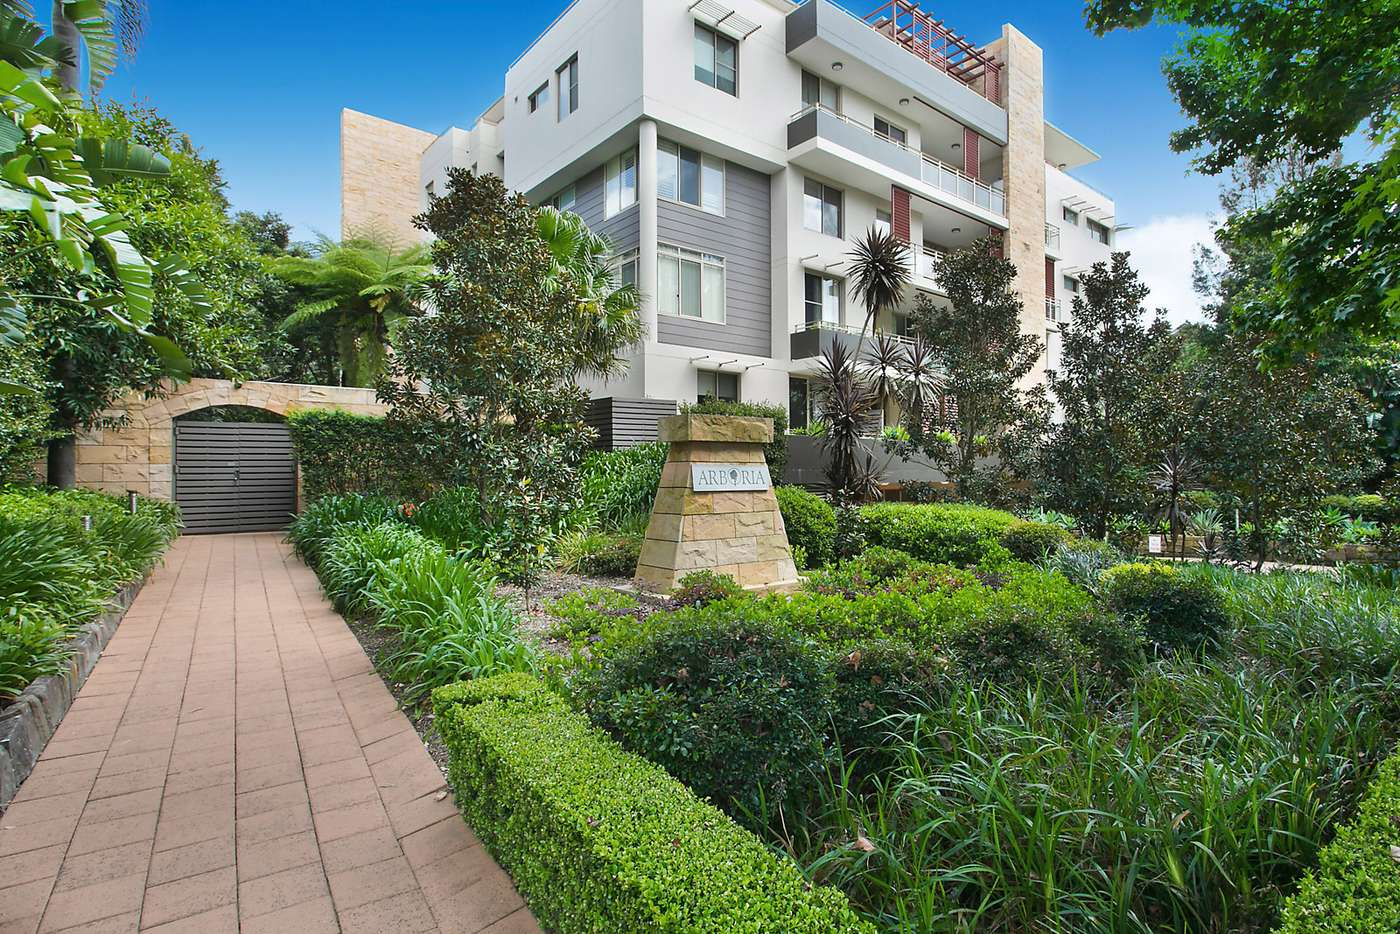 Main view of Homely apartment listing, 60/4-8 Bobbin Head Road, Pymble NSW 2073